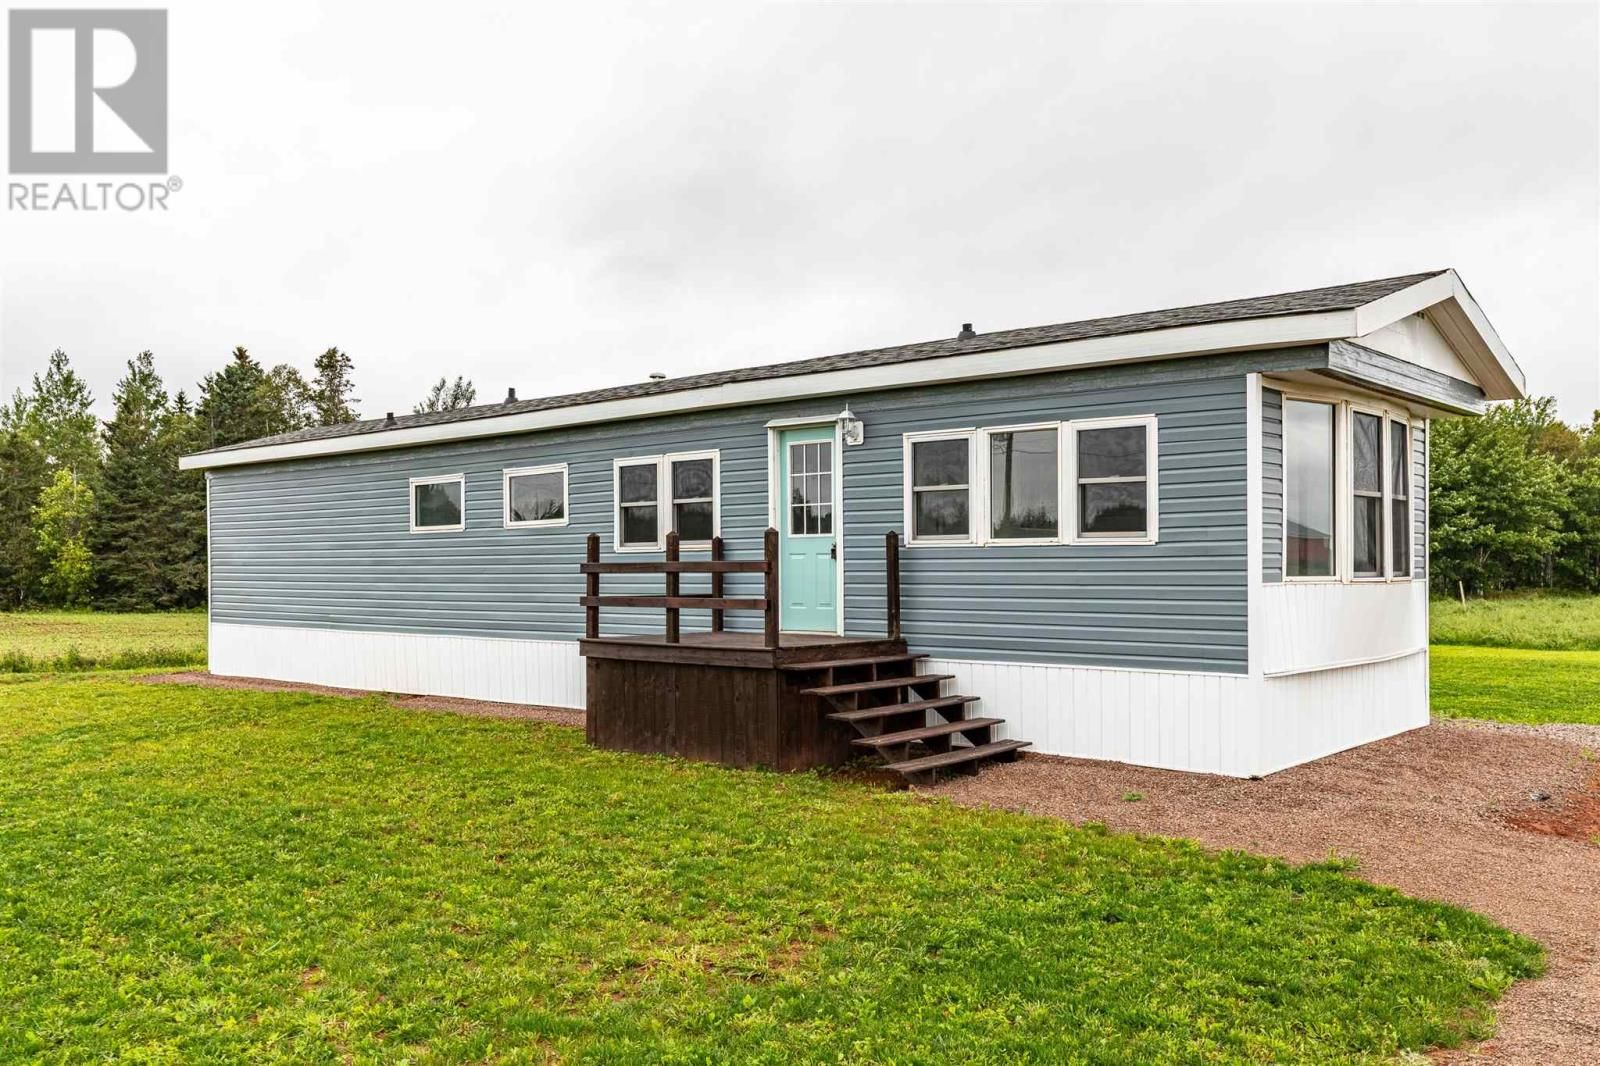 Main Photo: 4384 Route 11 in St. Nicholas: House for sale : MLS®# 202123302